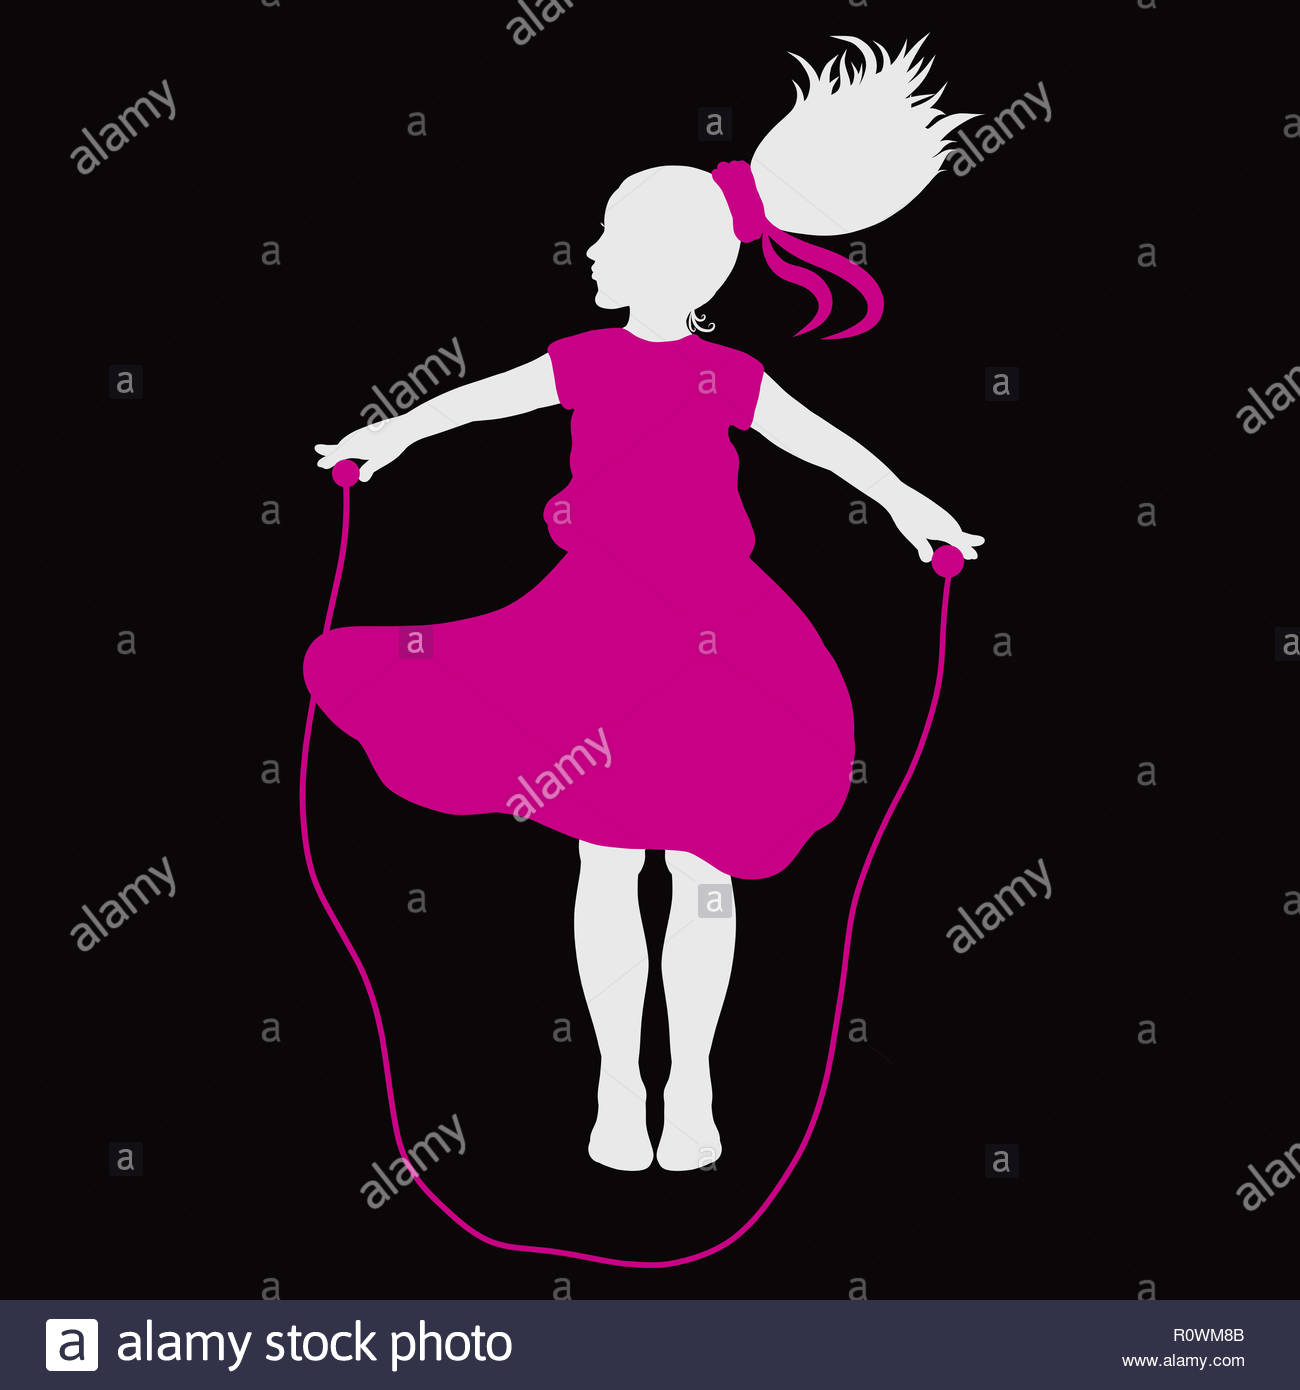 The girl with a magnificent tail, in a pink dress, jumps with a skipping rope - Stock Image